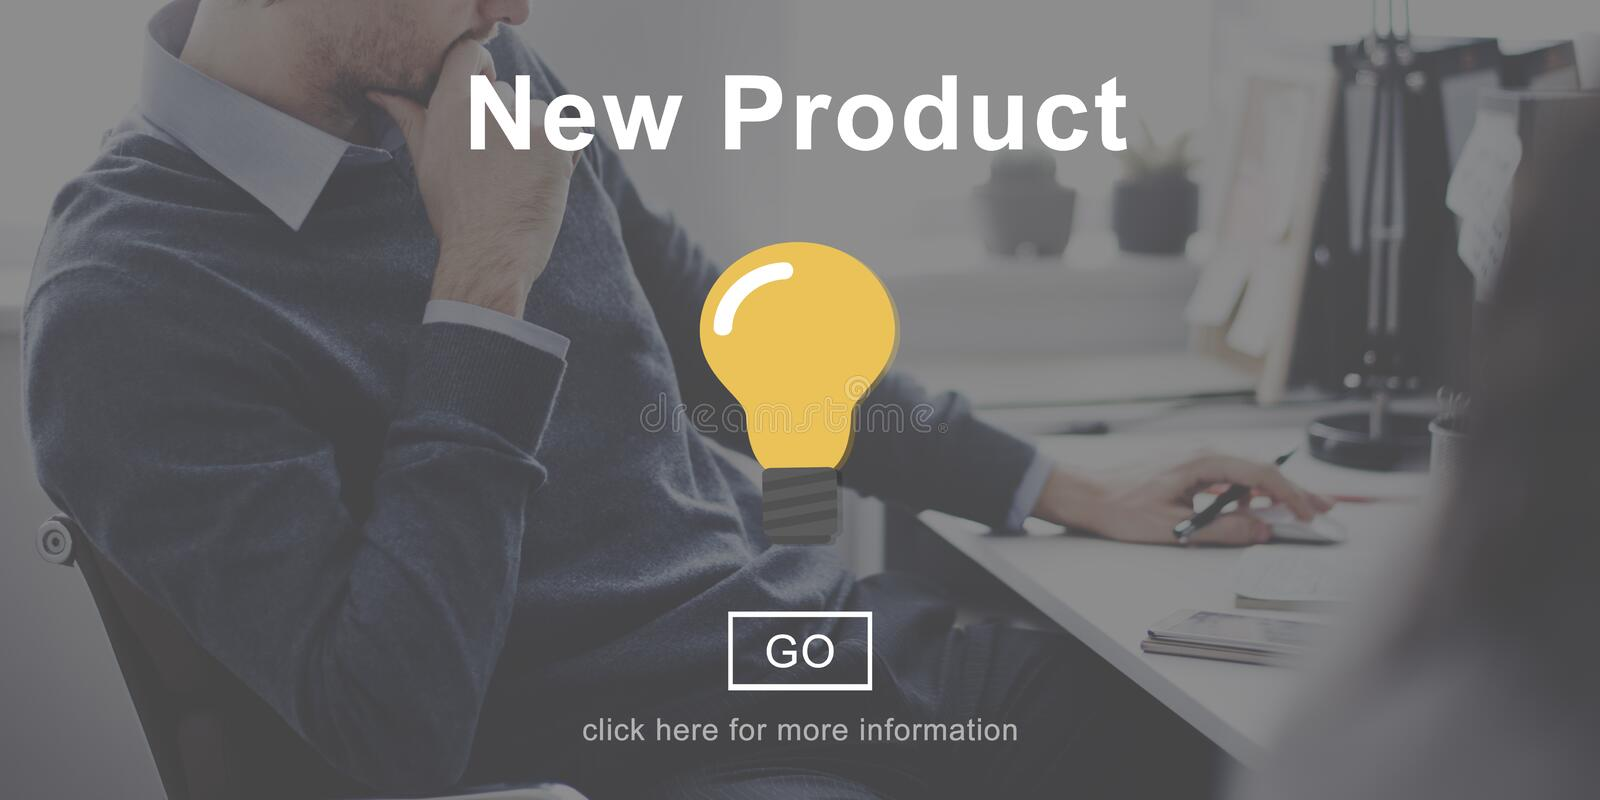 New Product Development Current Modern Concept. Business Current New Product Concept royalty free stock photo